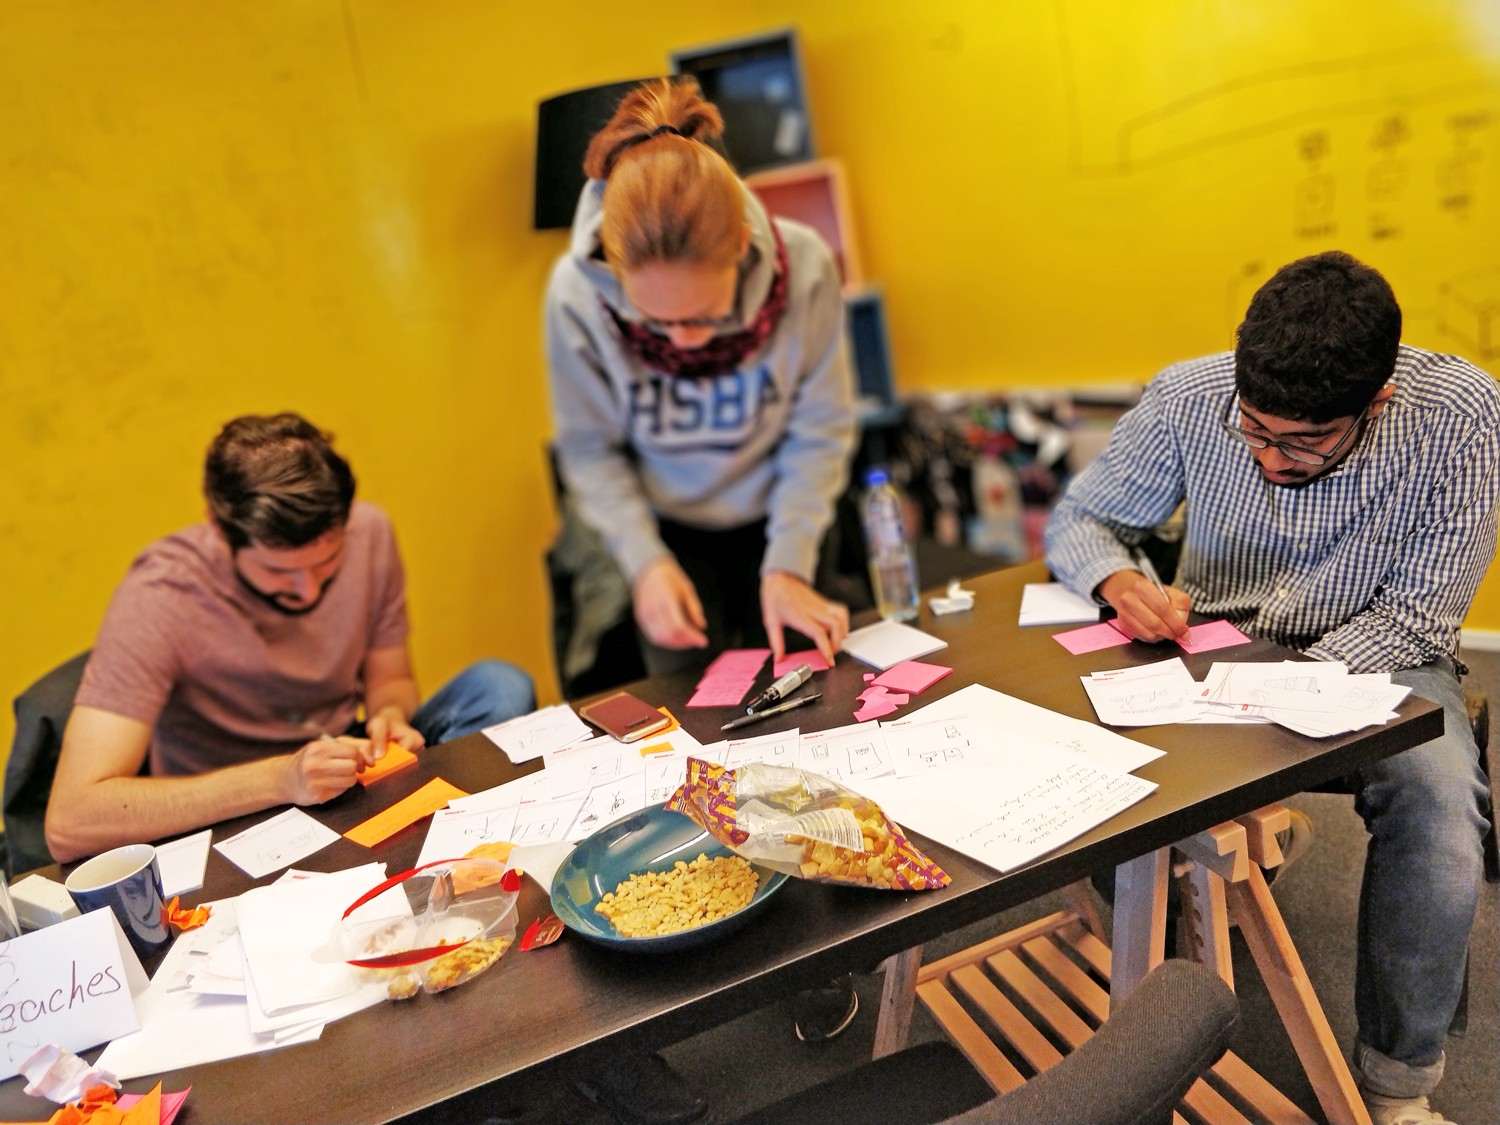 Three students writing on post its. Table is covered with paper, post its, and half-eaten snacks.